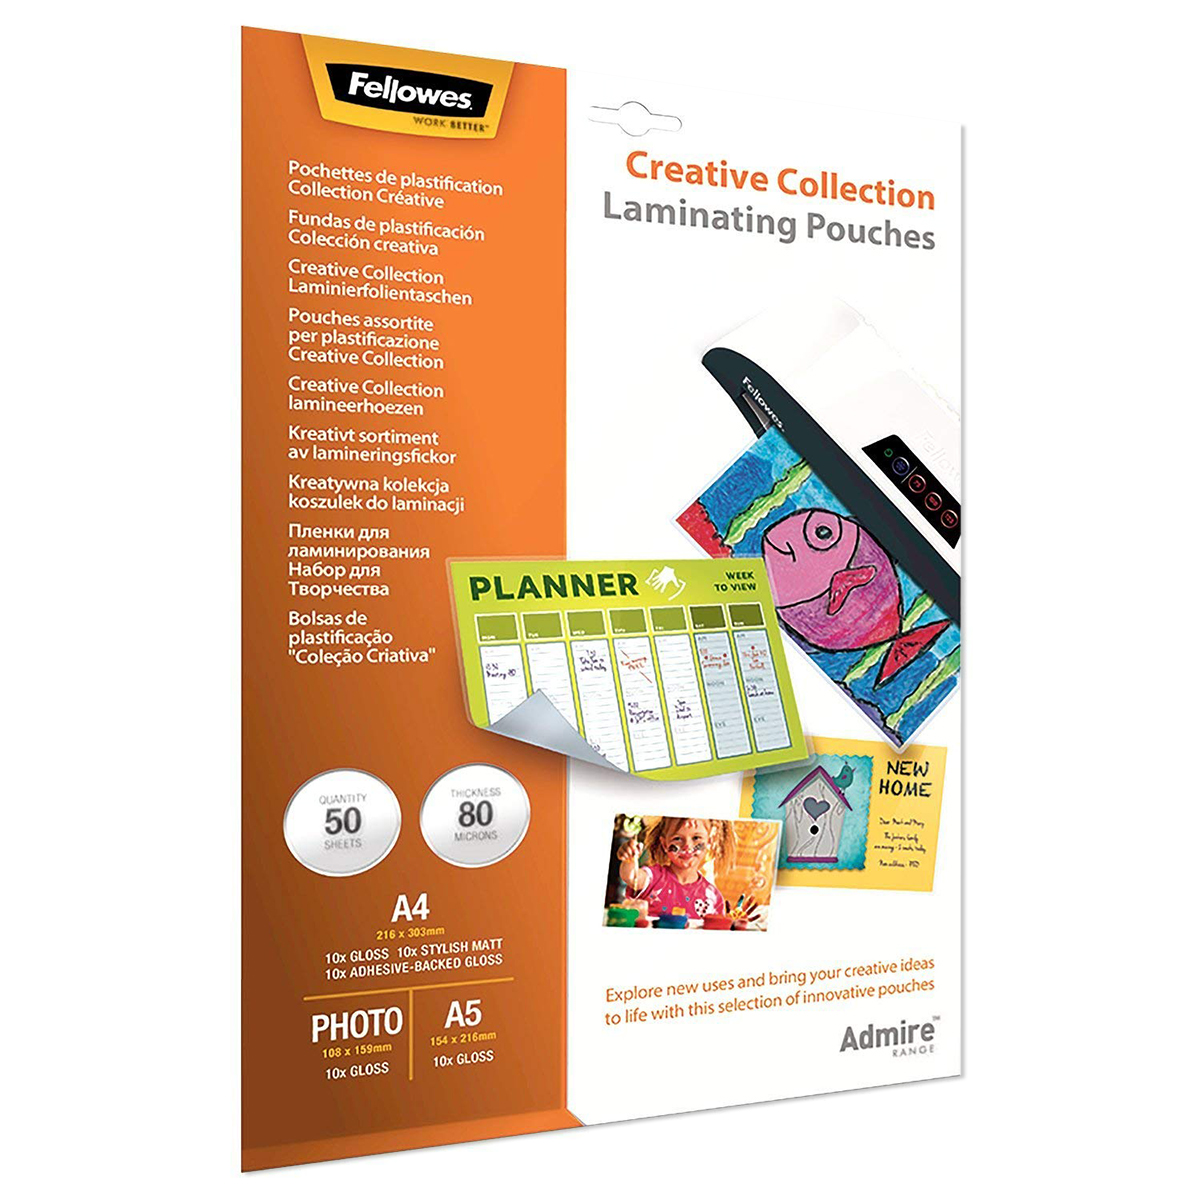 Fellowes 5602301 Admire Creative Collection Laminating Pouches 50pk